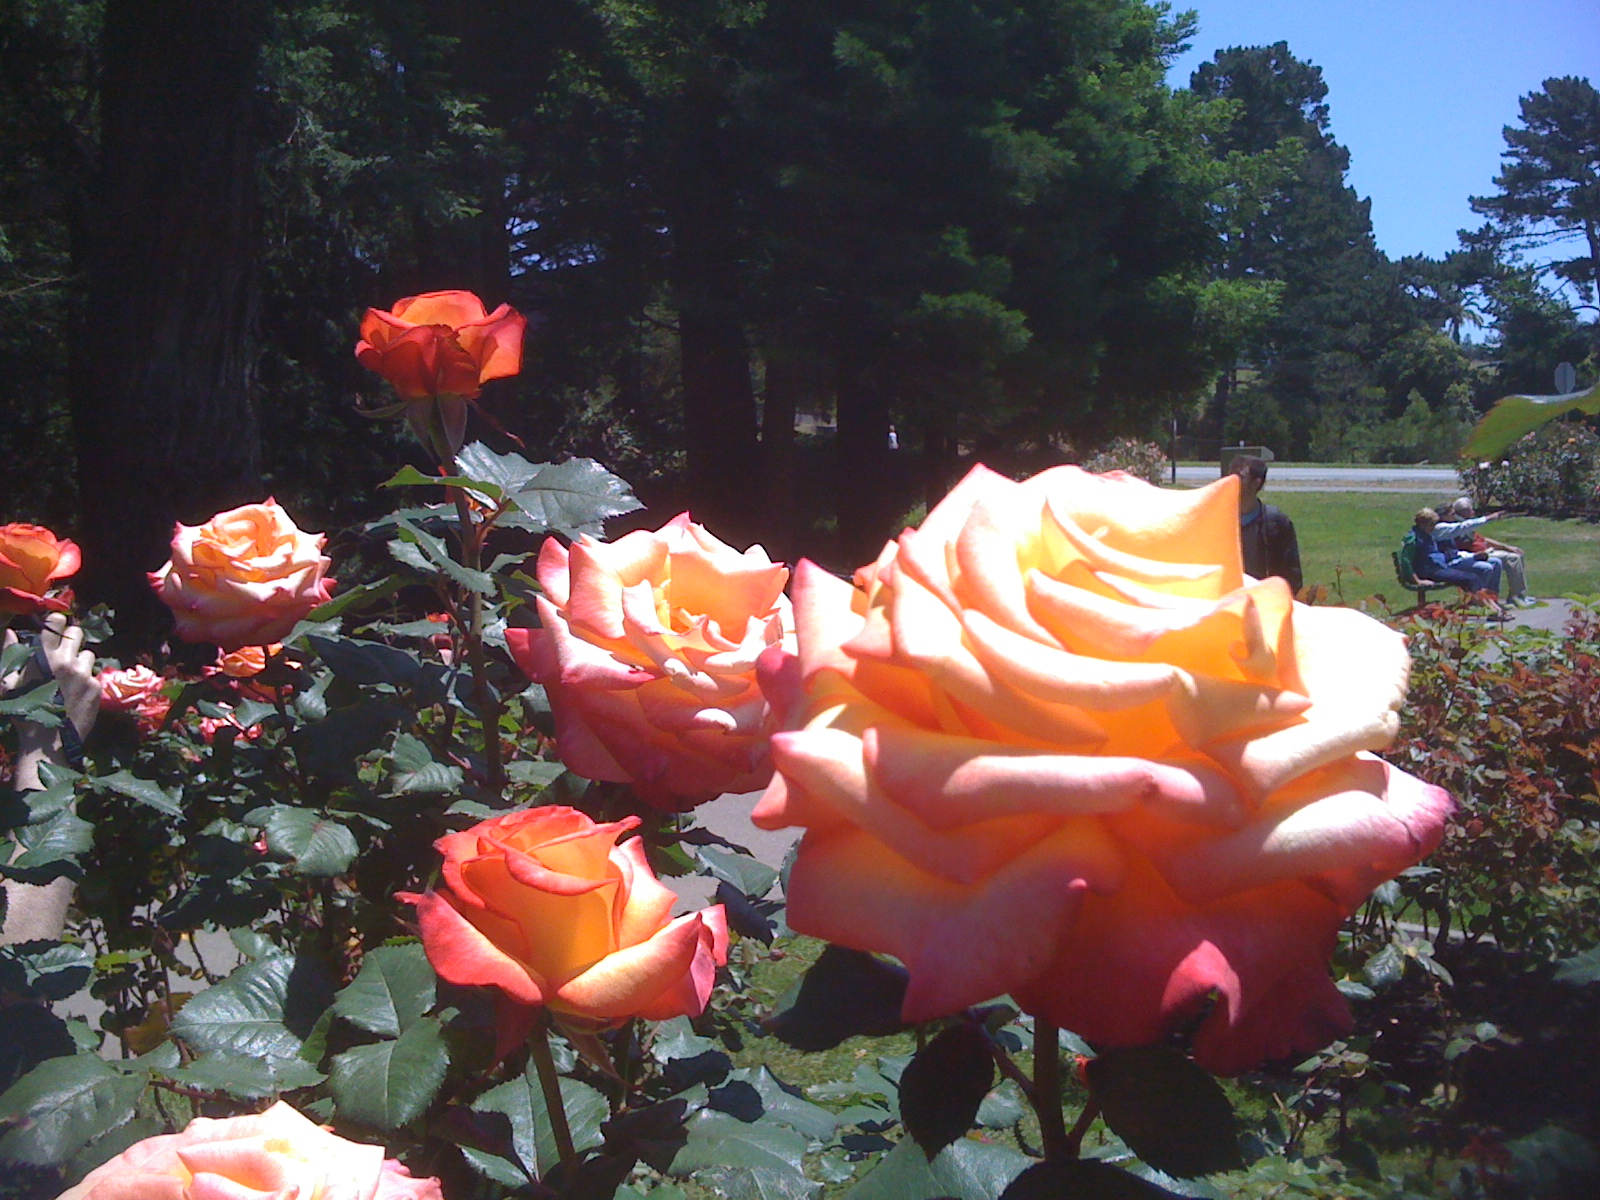 Roses at the Rose Garden